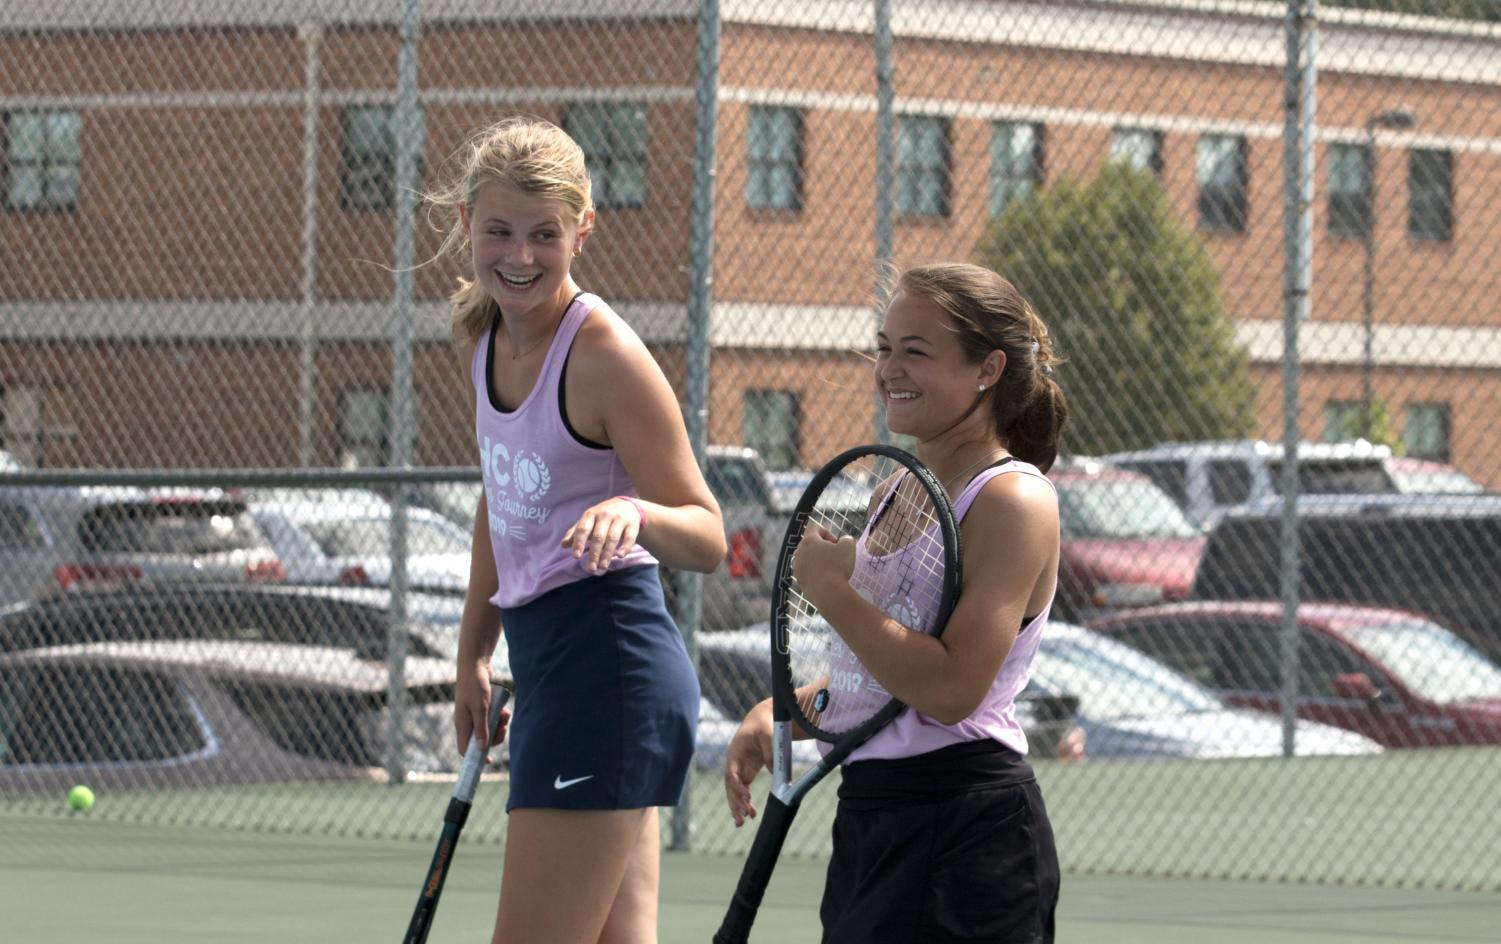 Senior Inge Petrie and sophomore McKenna Lenhardt celebrate after winning a point at the FHC Doubles Tournament on Friday.